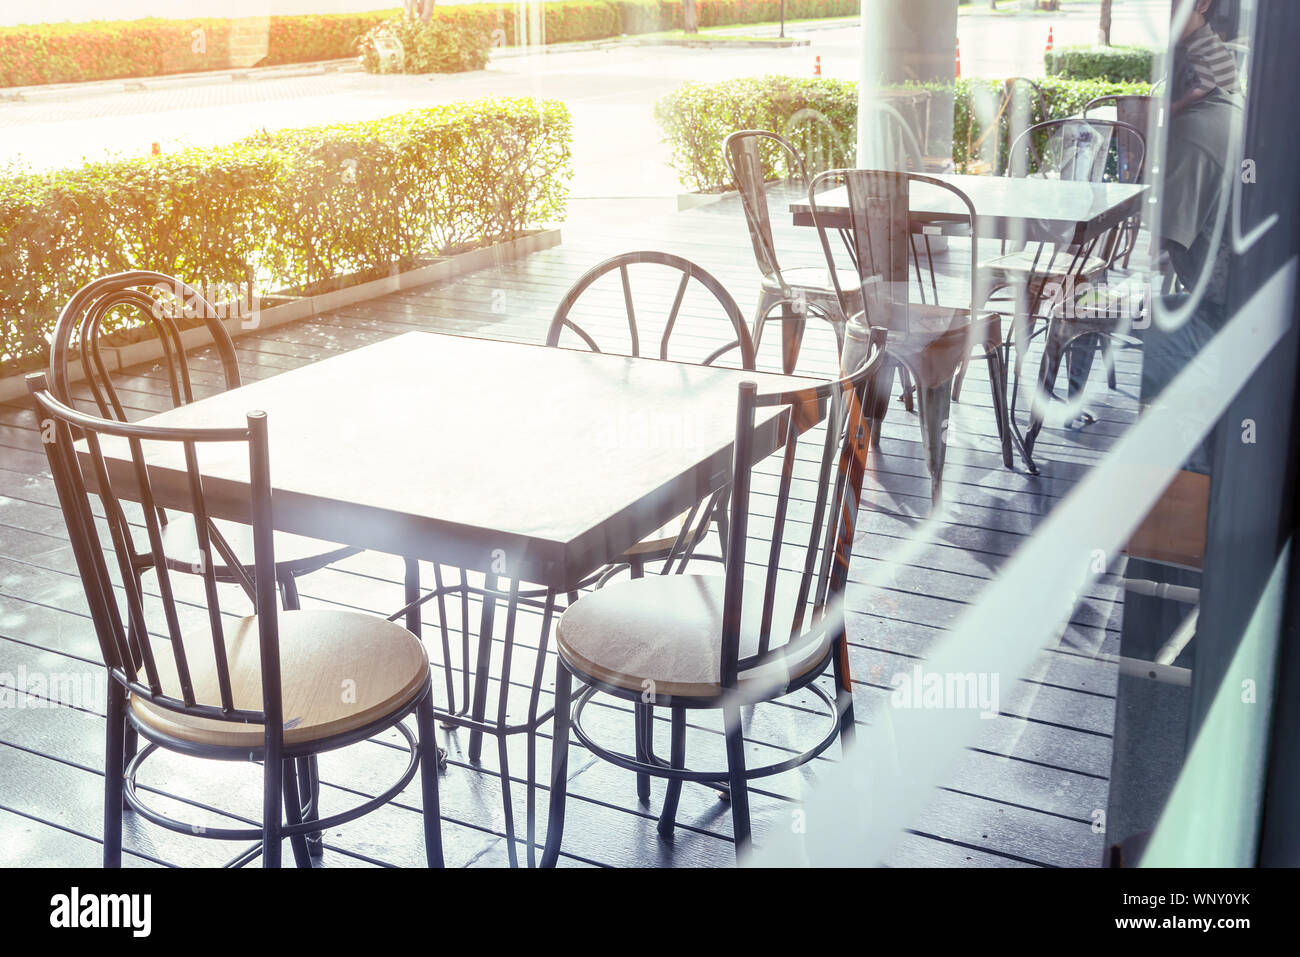 Outside Shop In Sunny Day With Tables And Chairs Of Cafe Restaurant In The Morning Time Which Nobody Uses Them Outdoor Of Coffee Shop Exterior Des Stock Photo Alamy